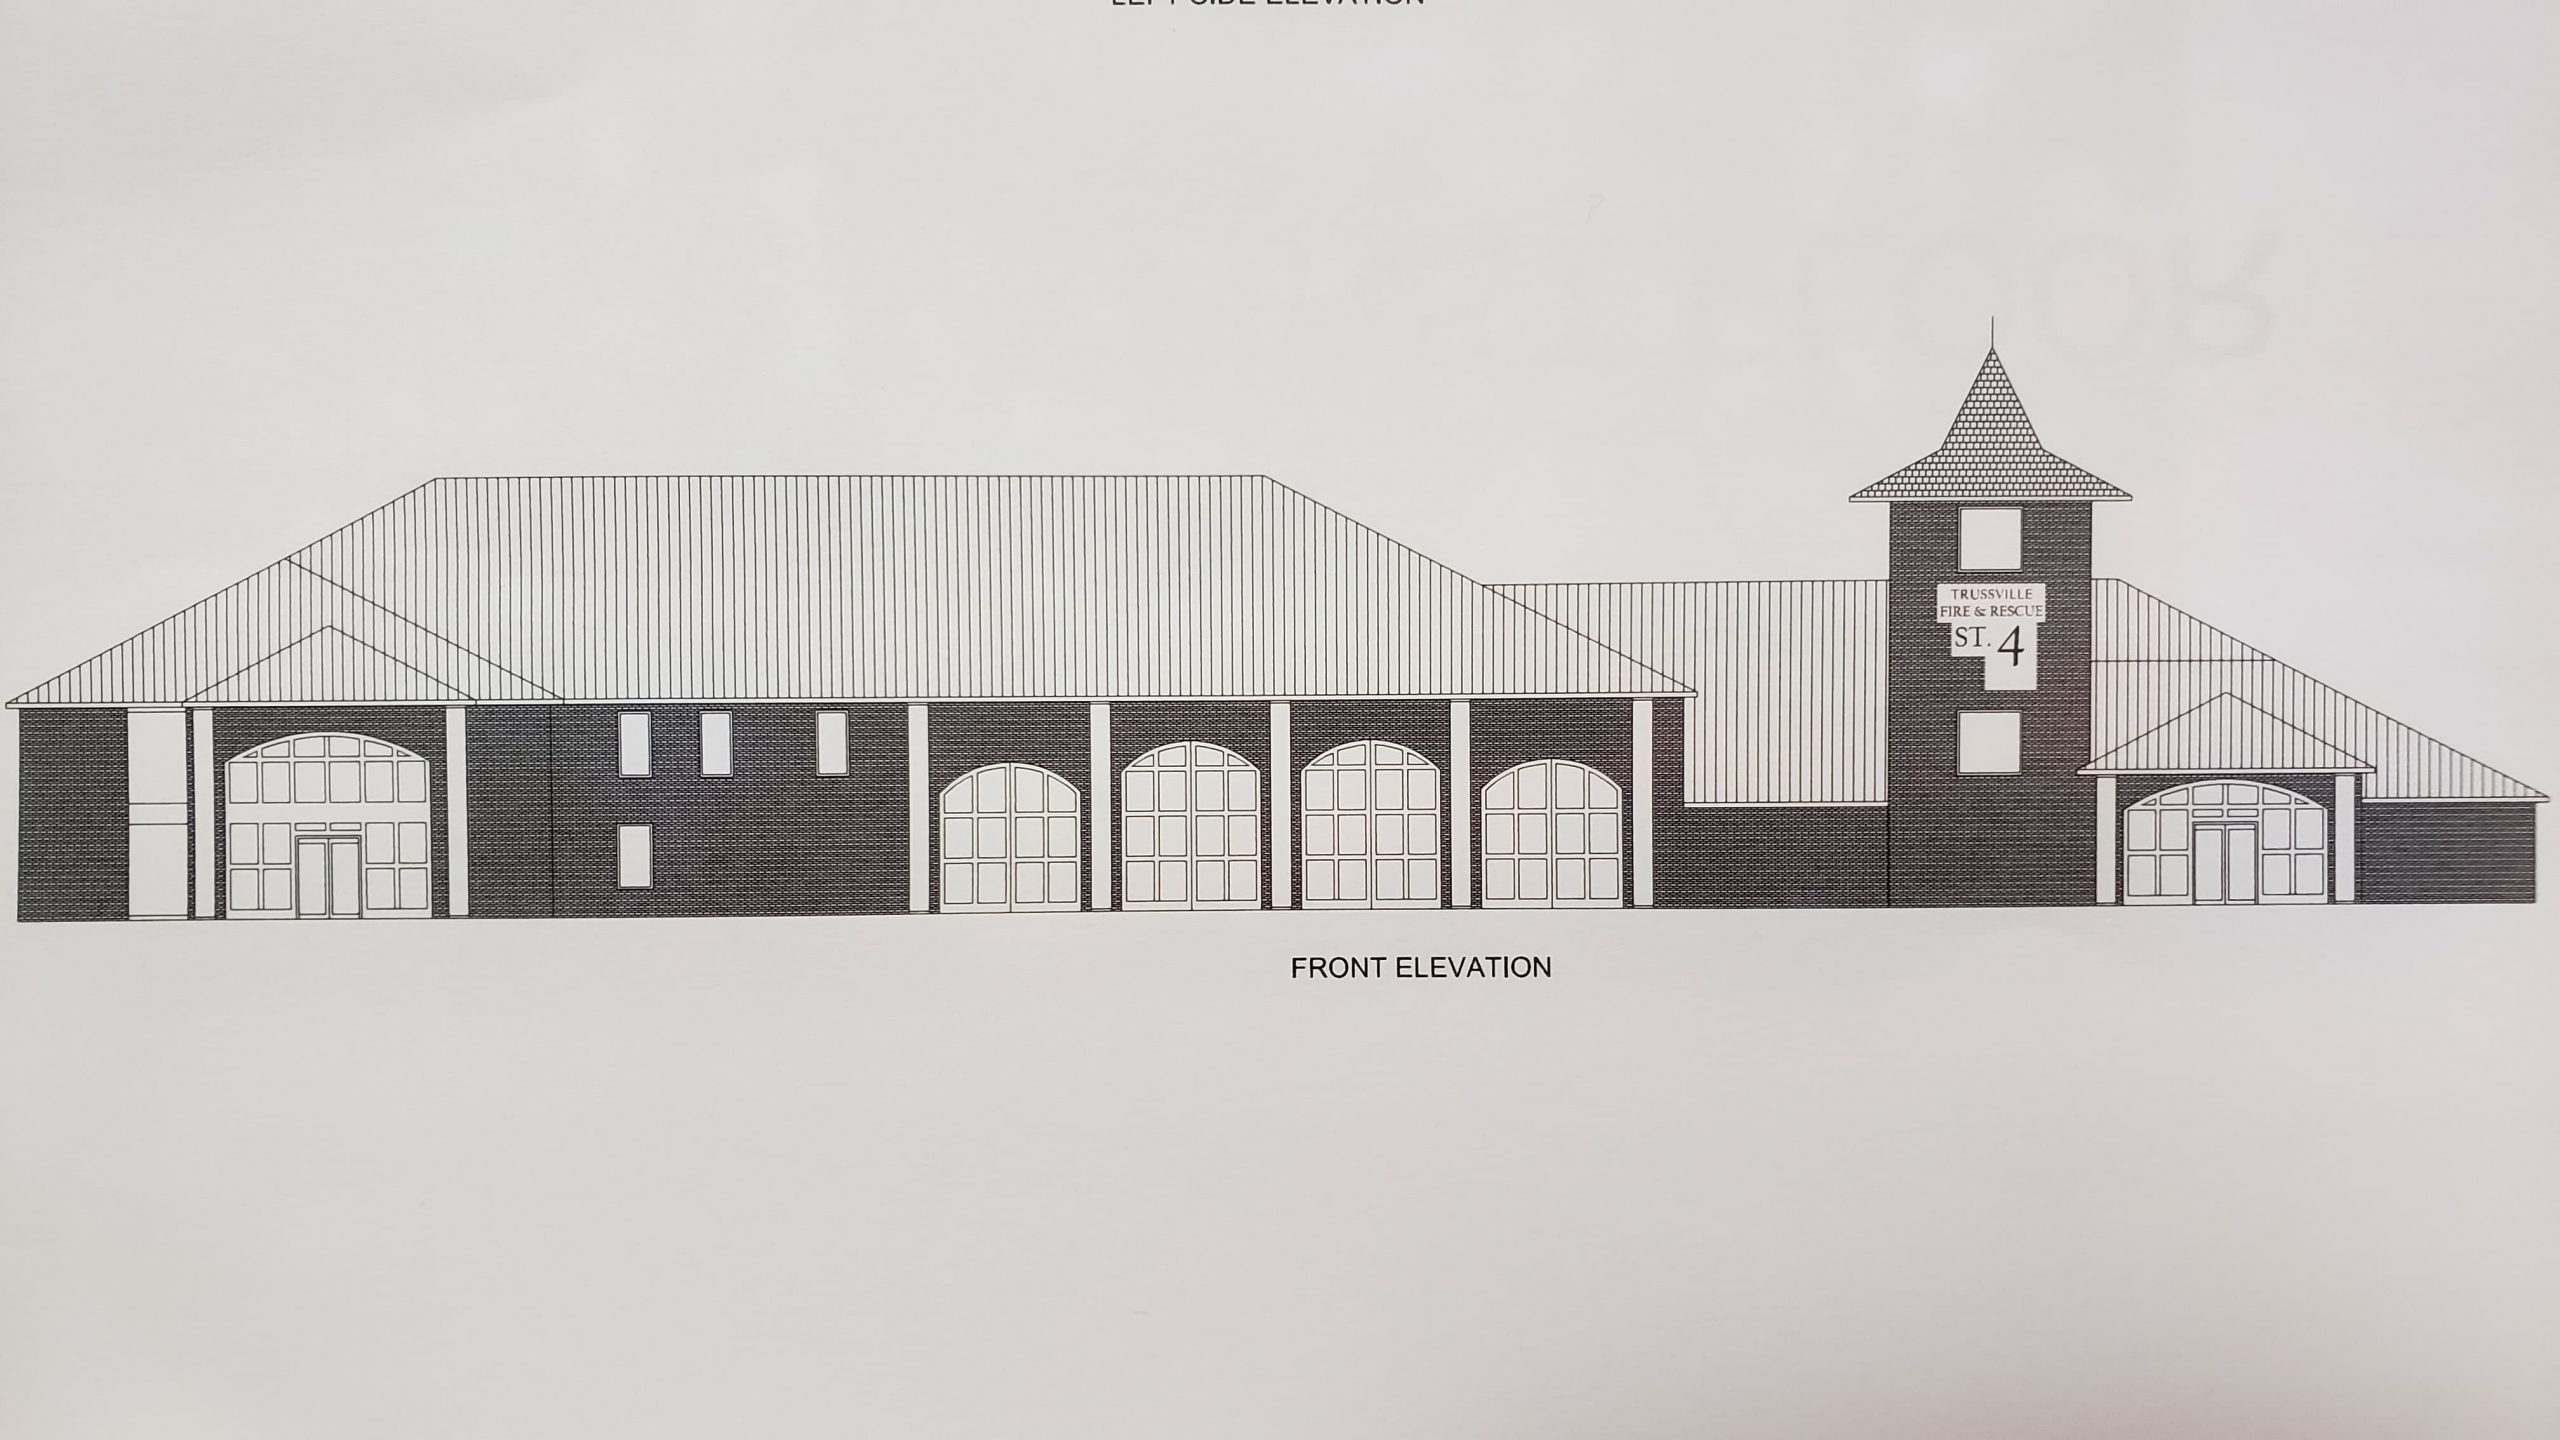 New fire station plans in preliminary stages for the city of Trussville